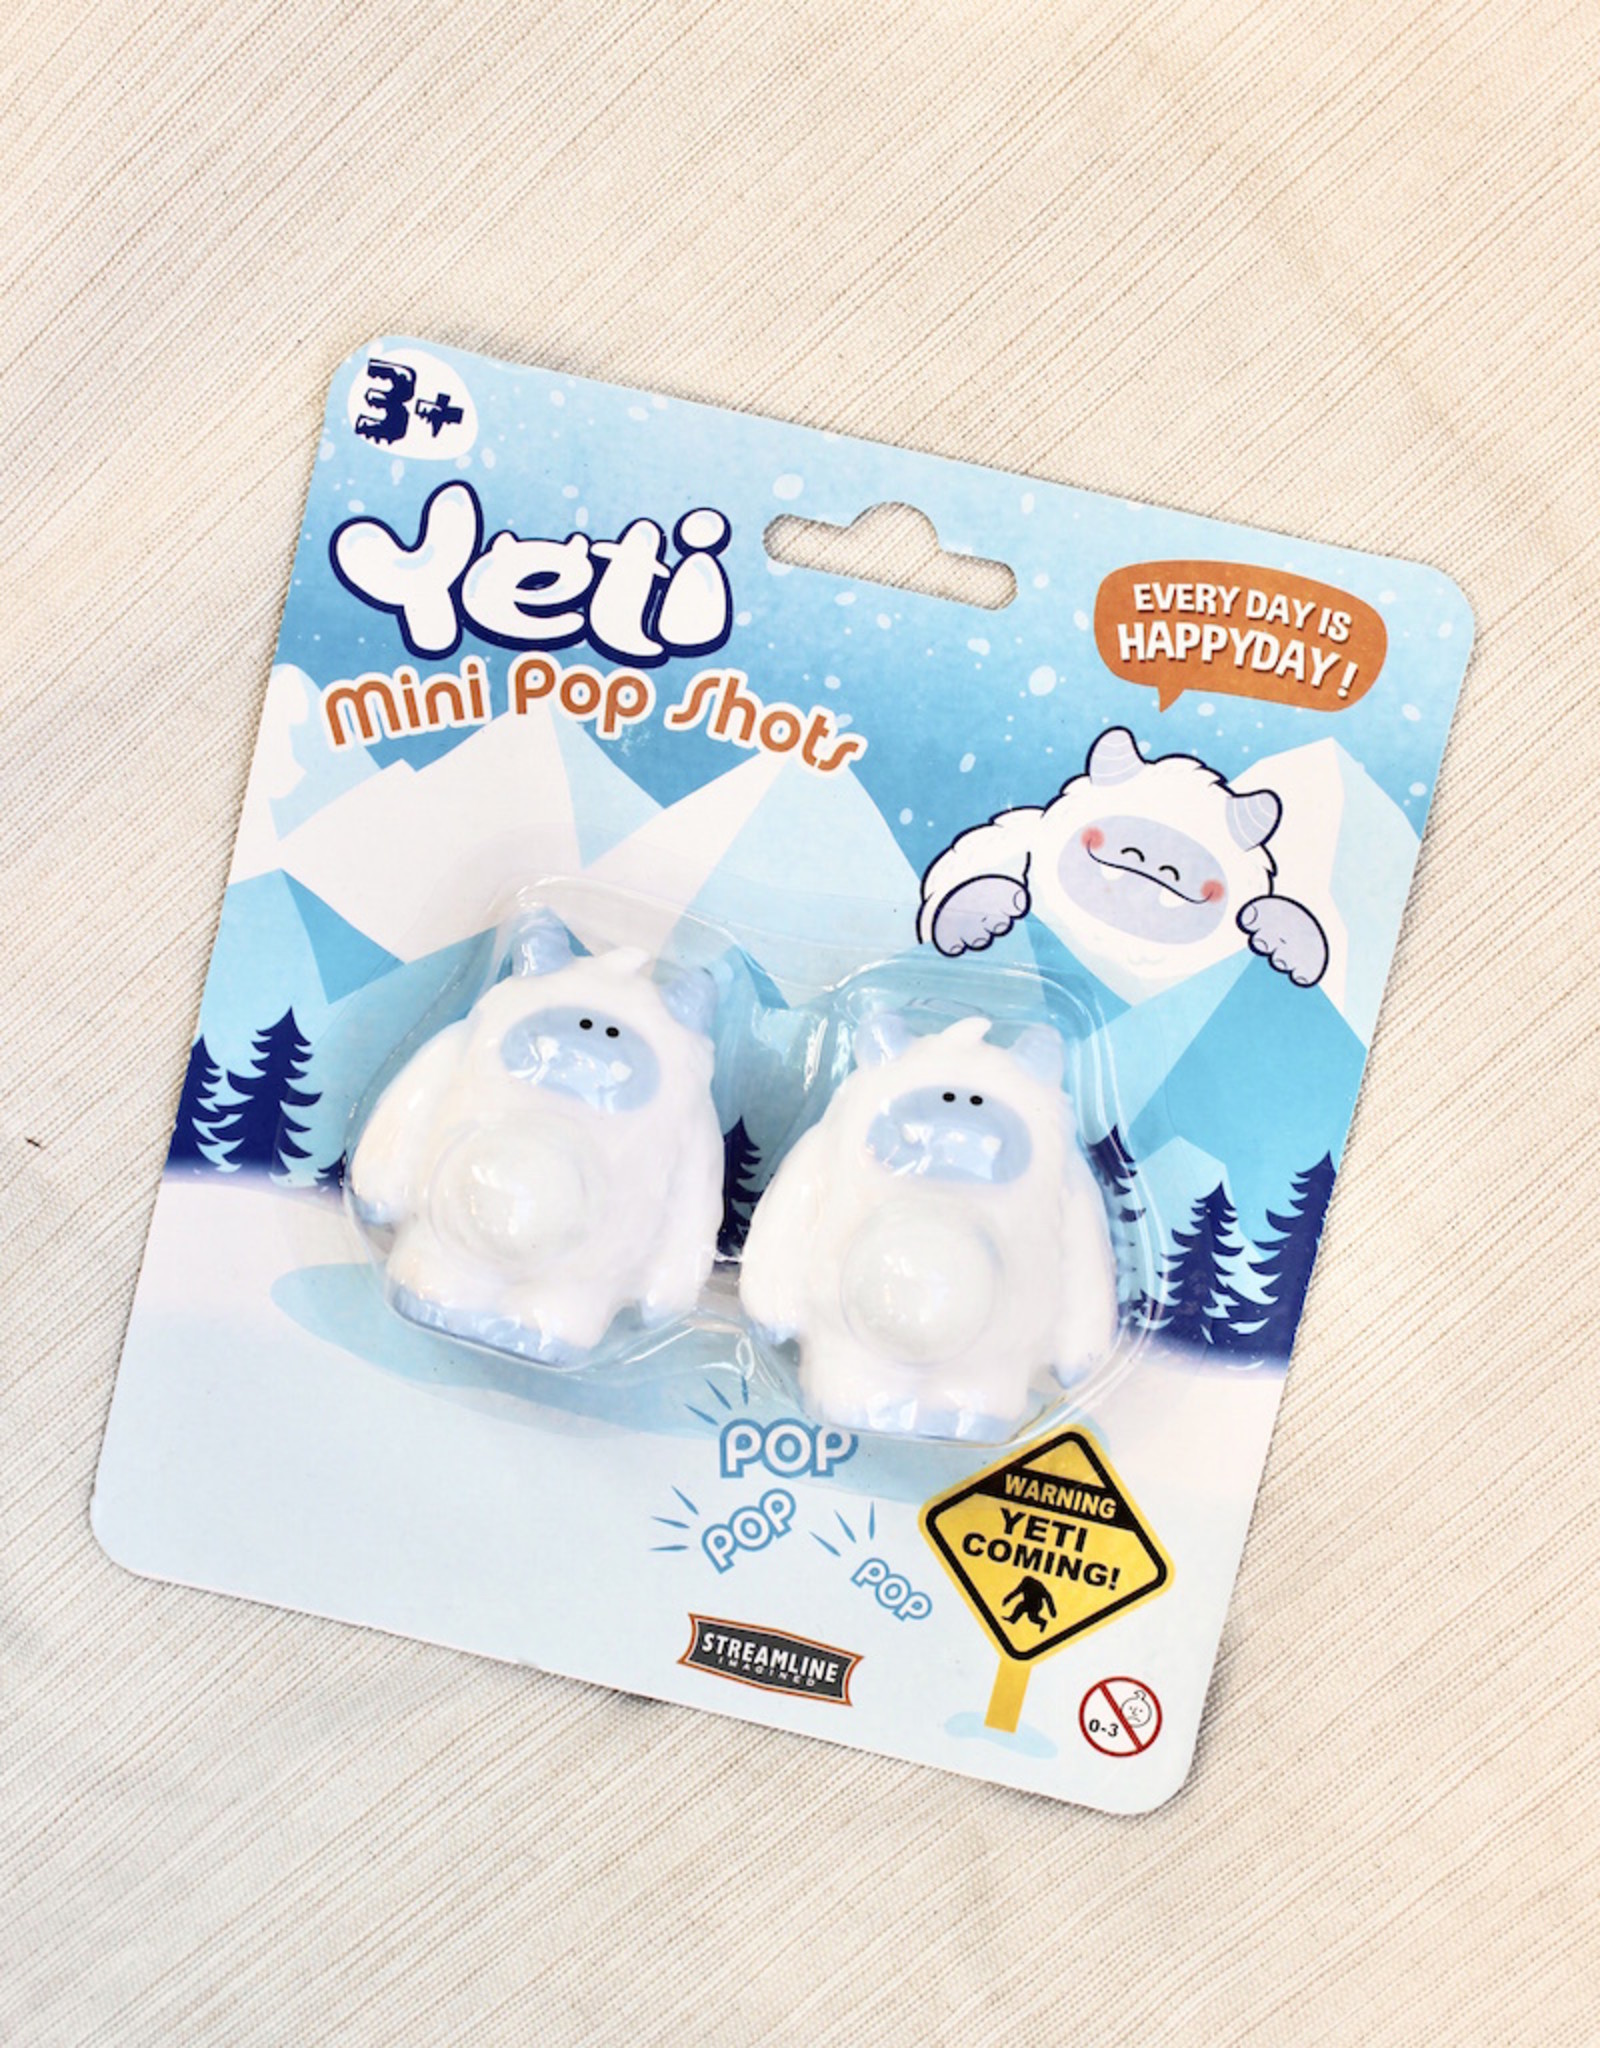 Yeti Mini Pop Shot